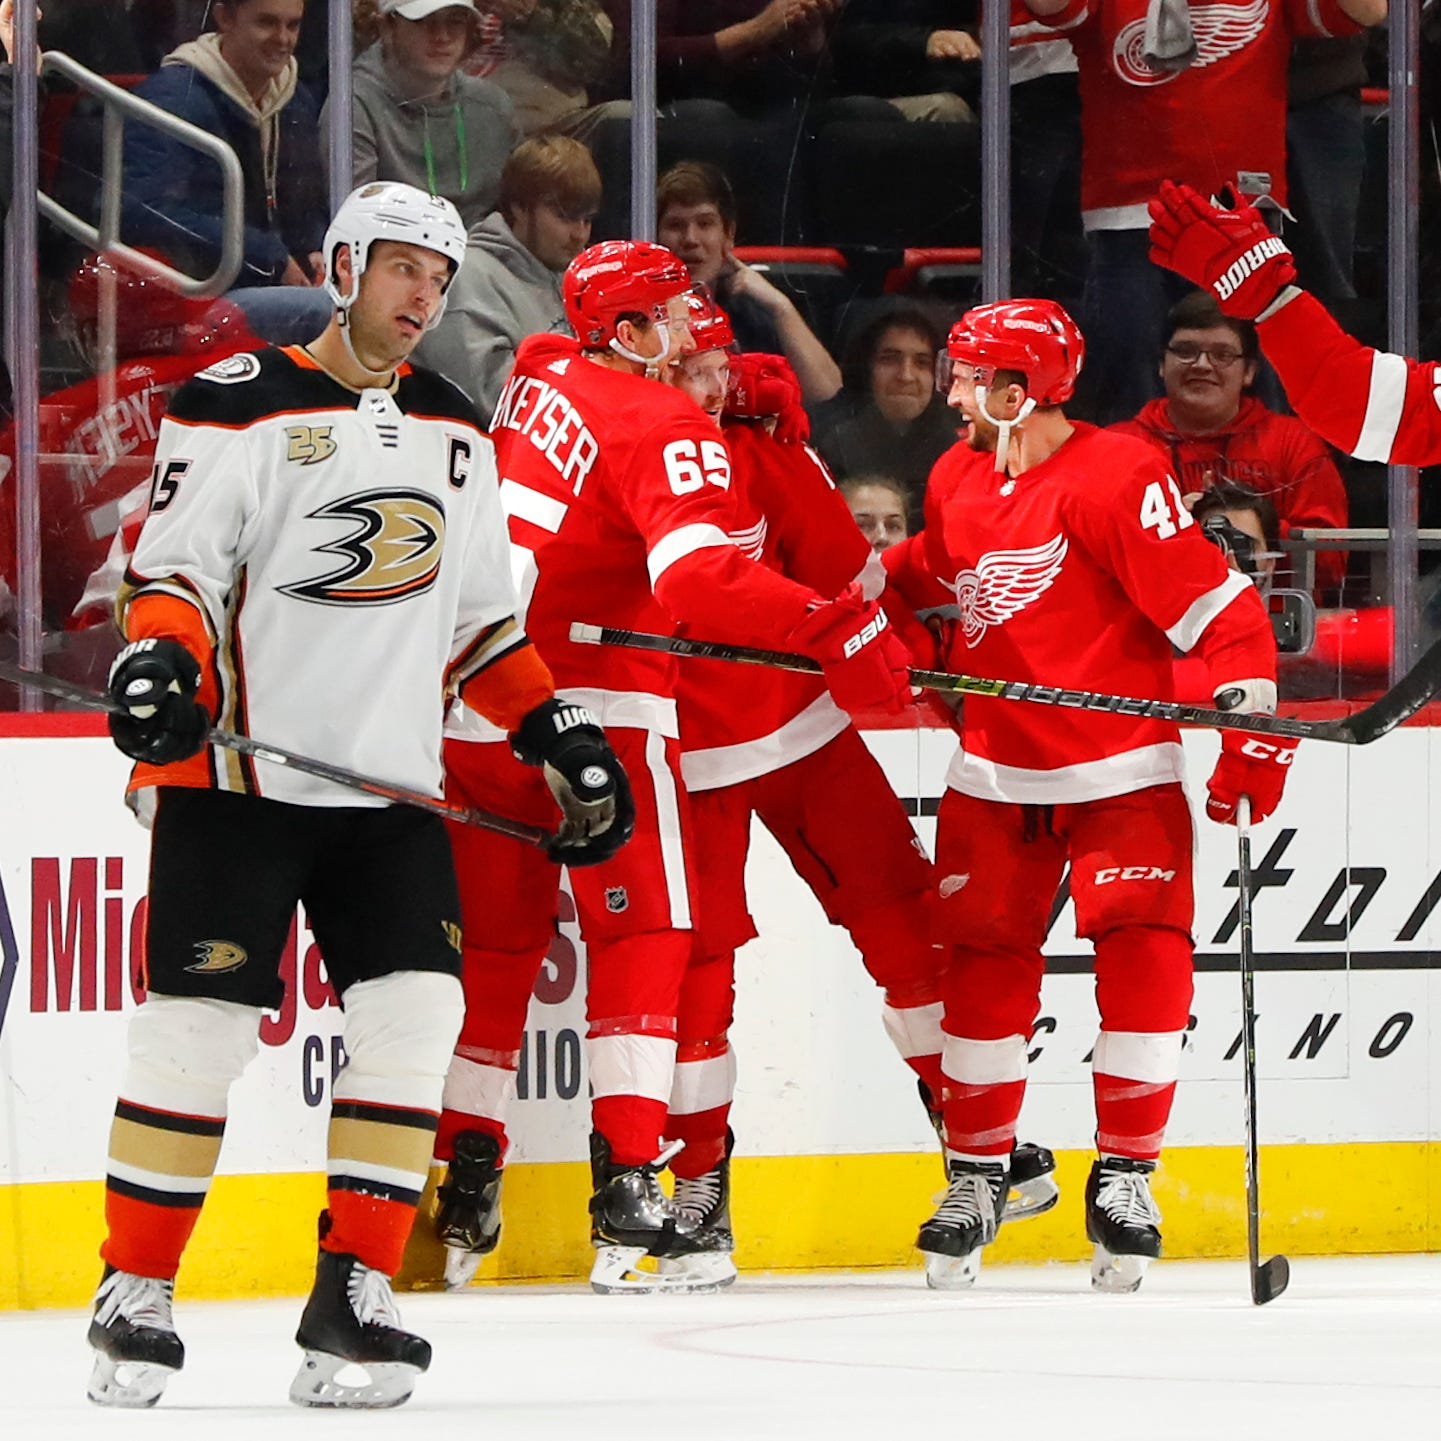 Thomas Vanek sparked the Detroit Red Wings. Here's what he said